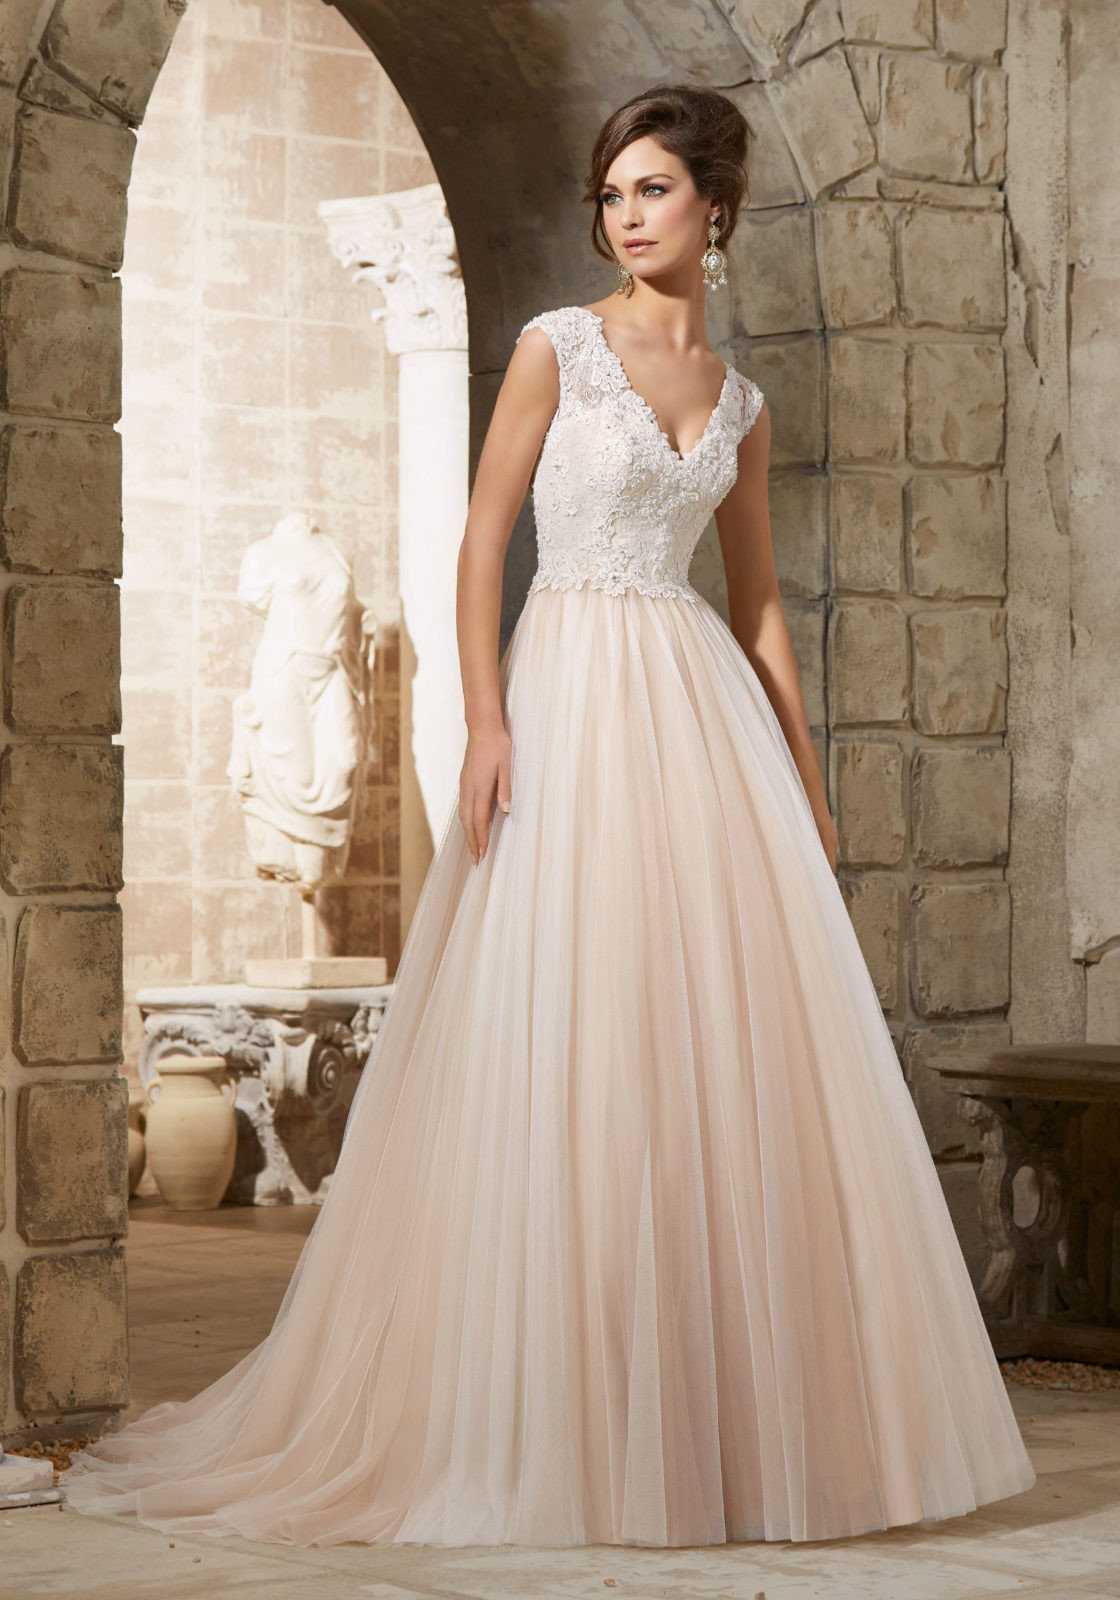 Lace Wedding Gowns  Embroidered Lace Appliqués with Crystal Beading over